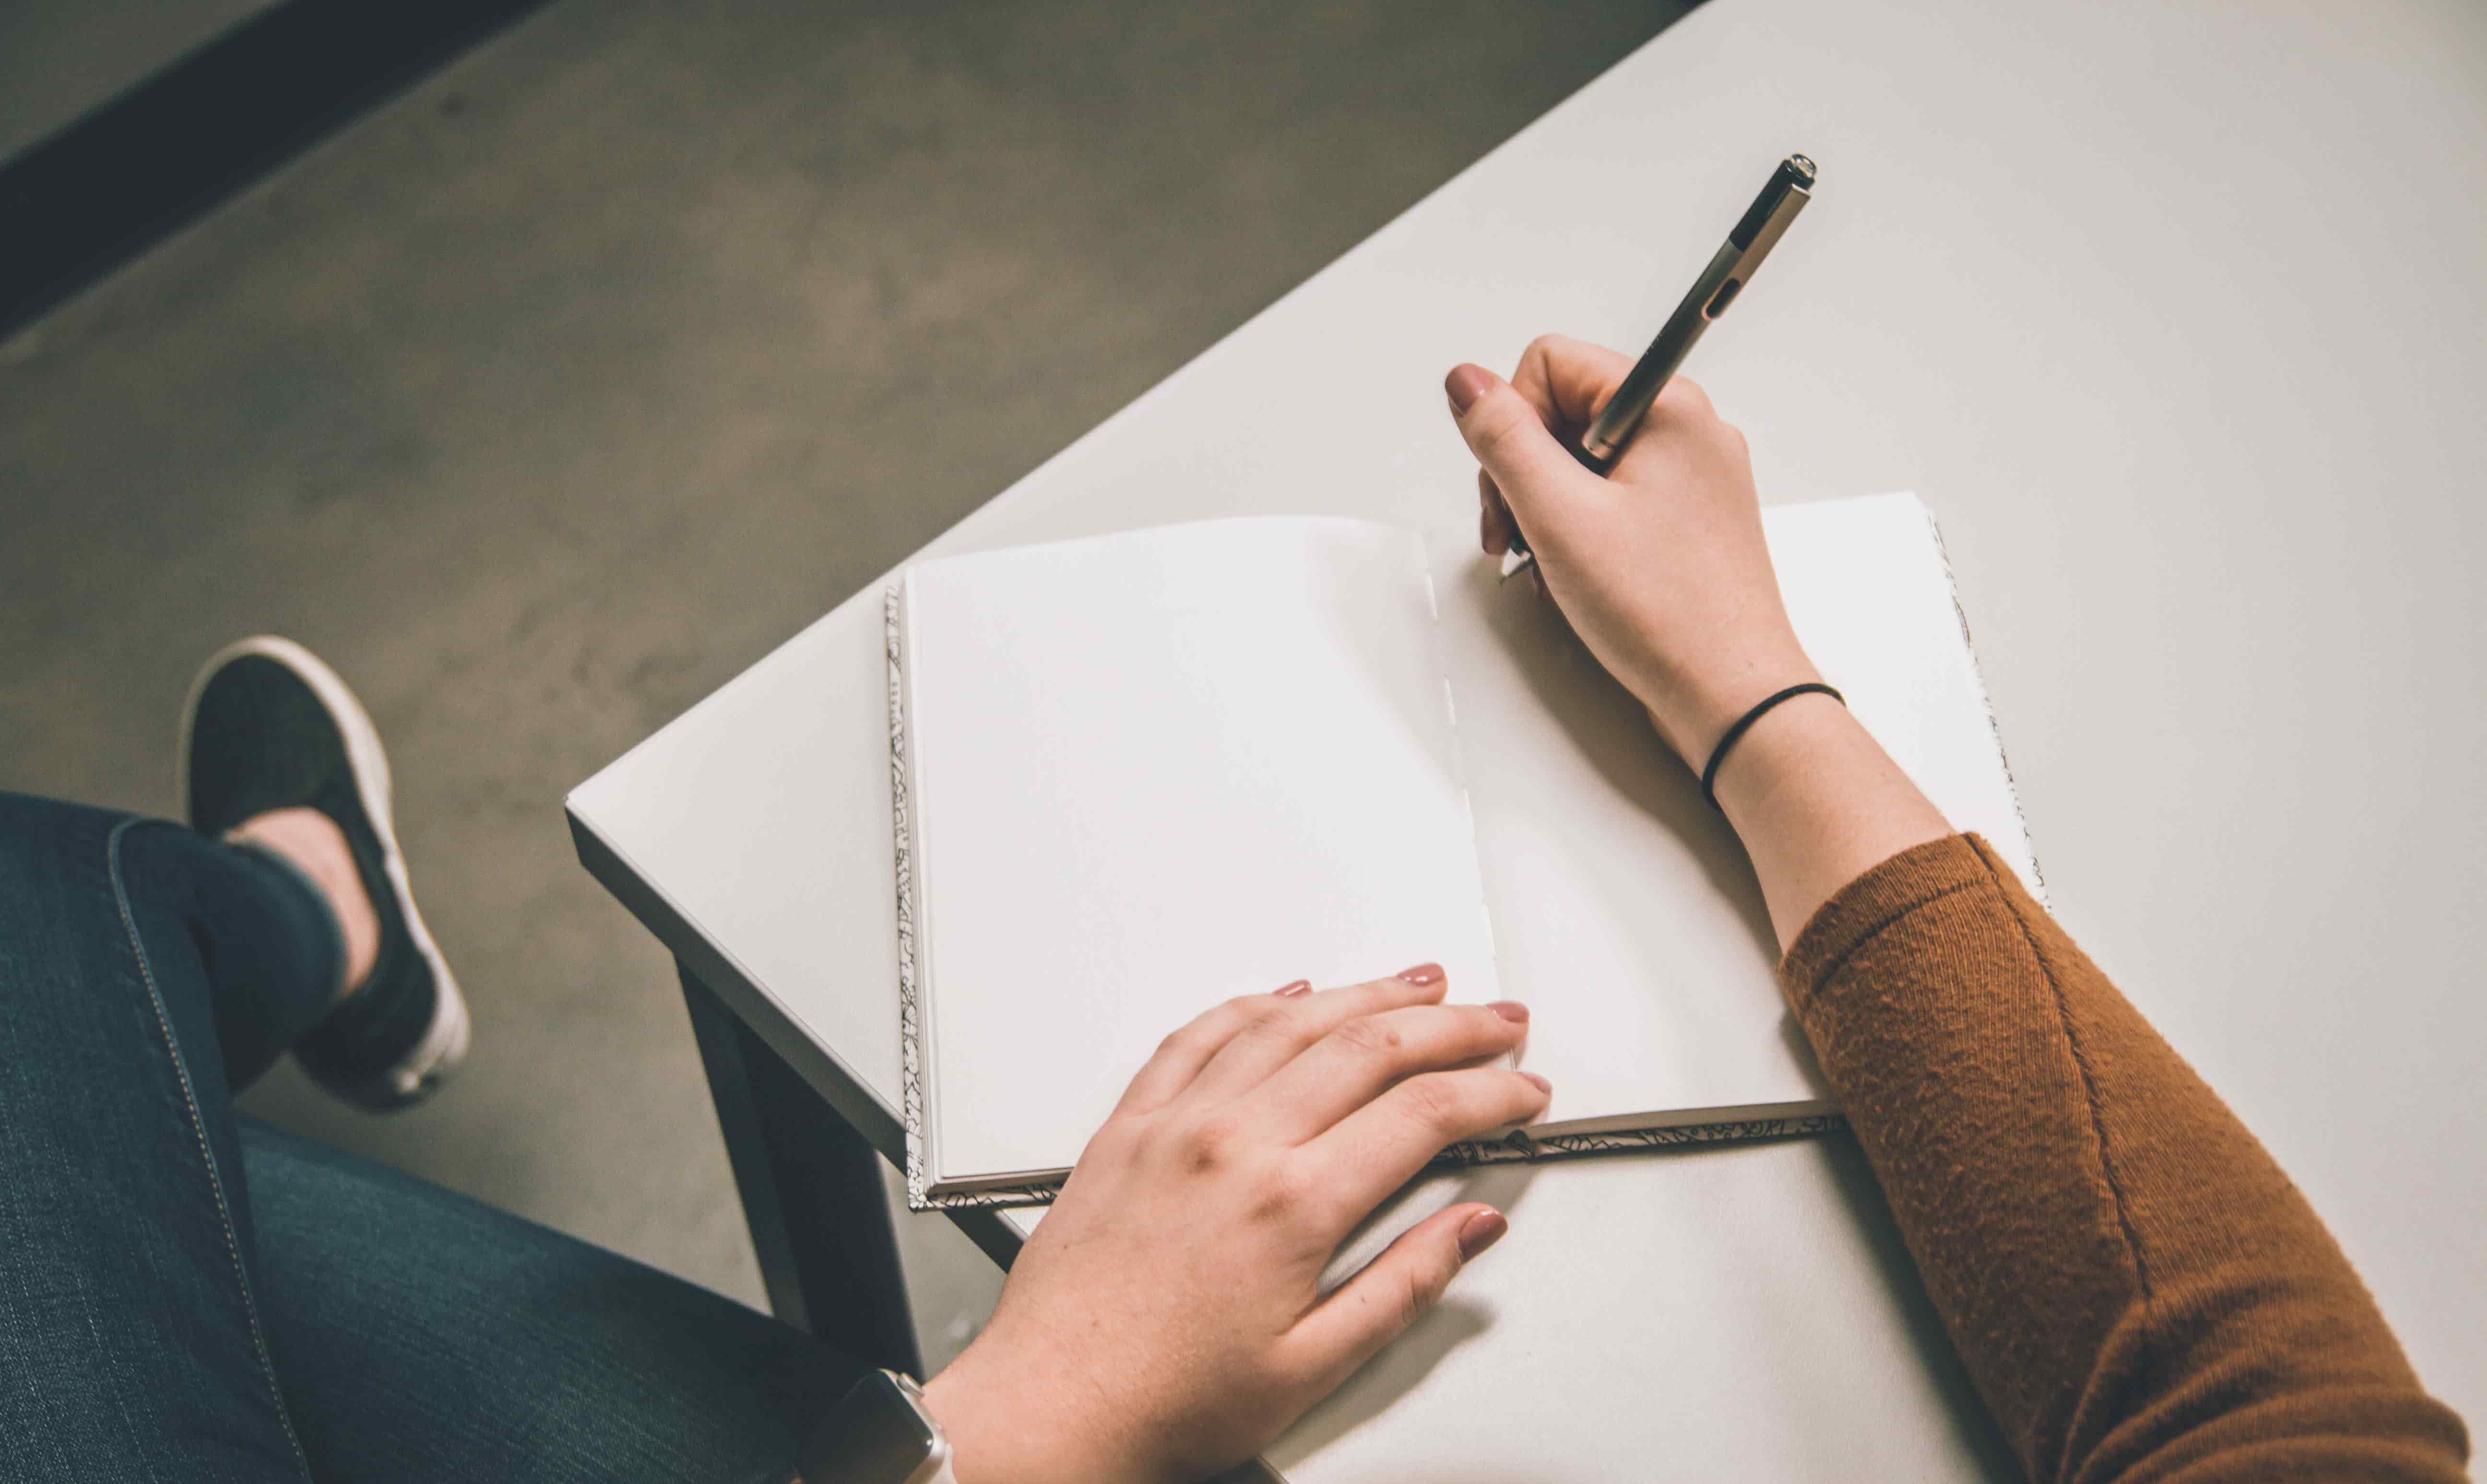 Taking interview notes can distract from the subject